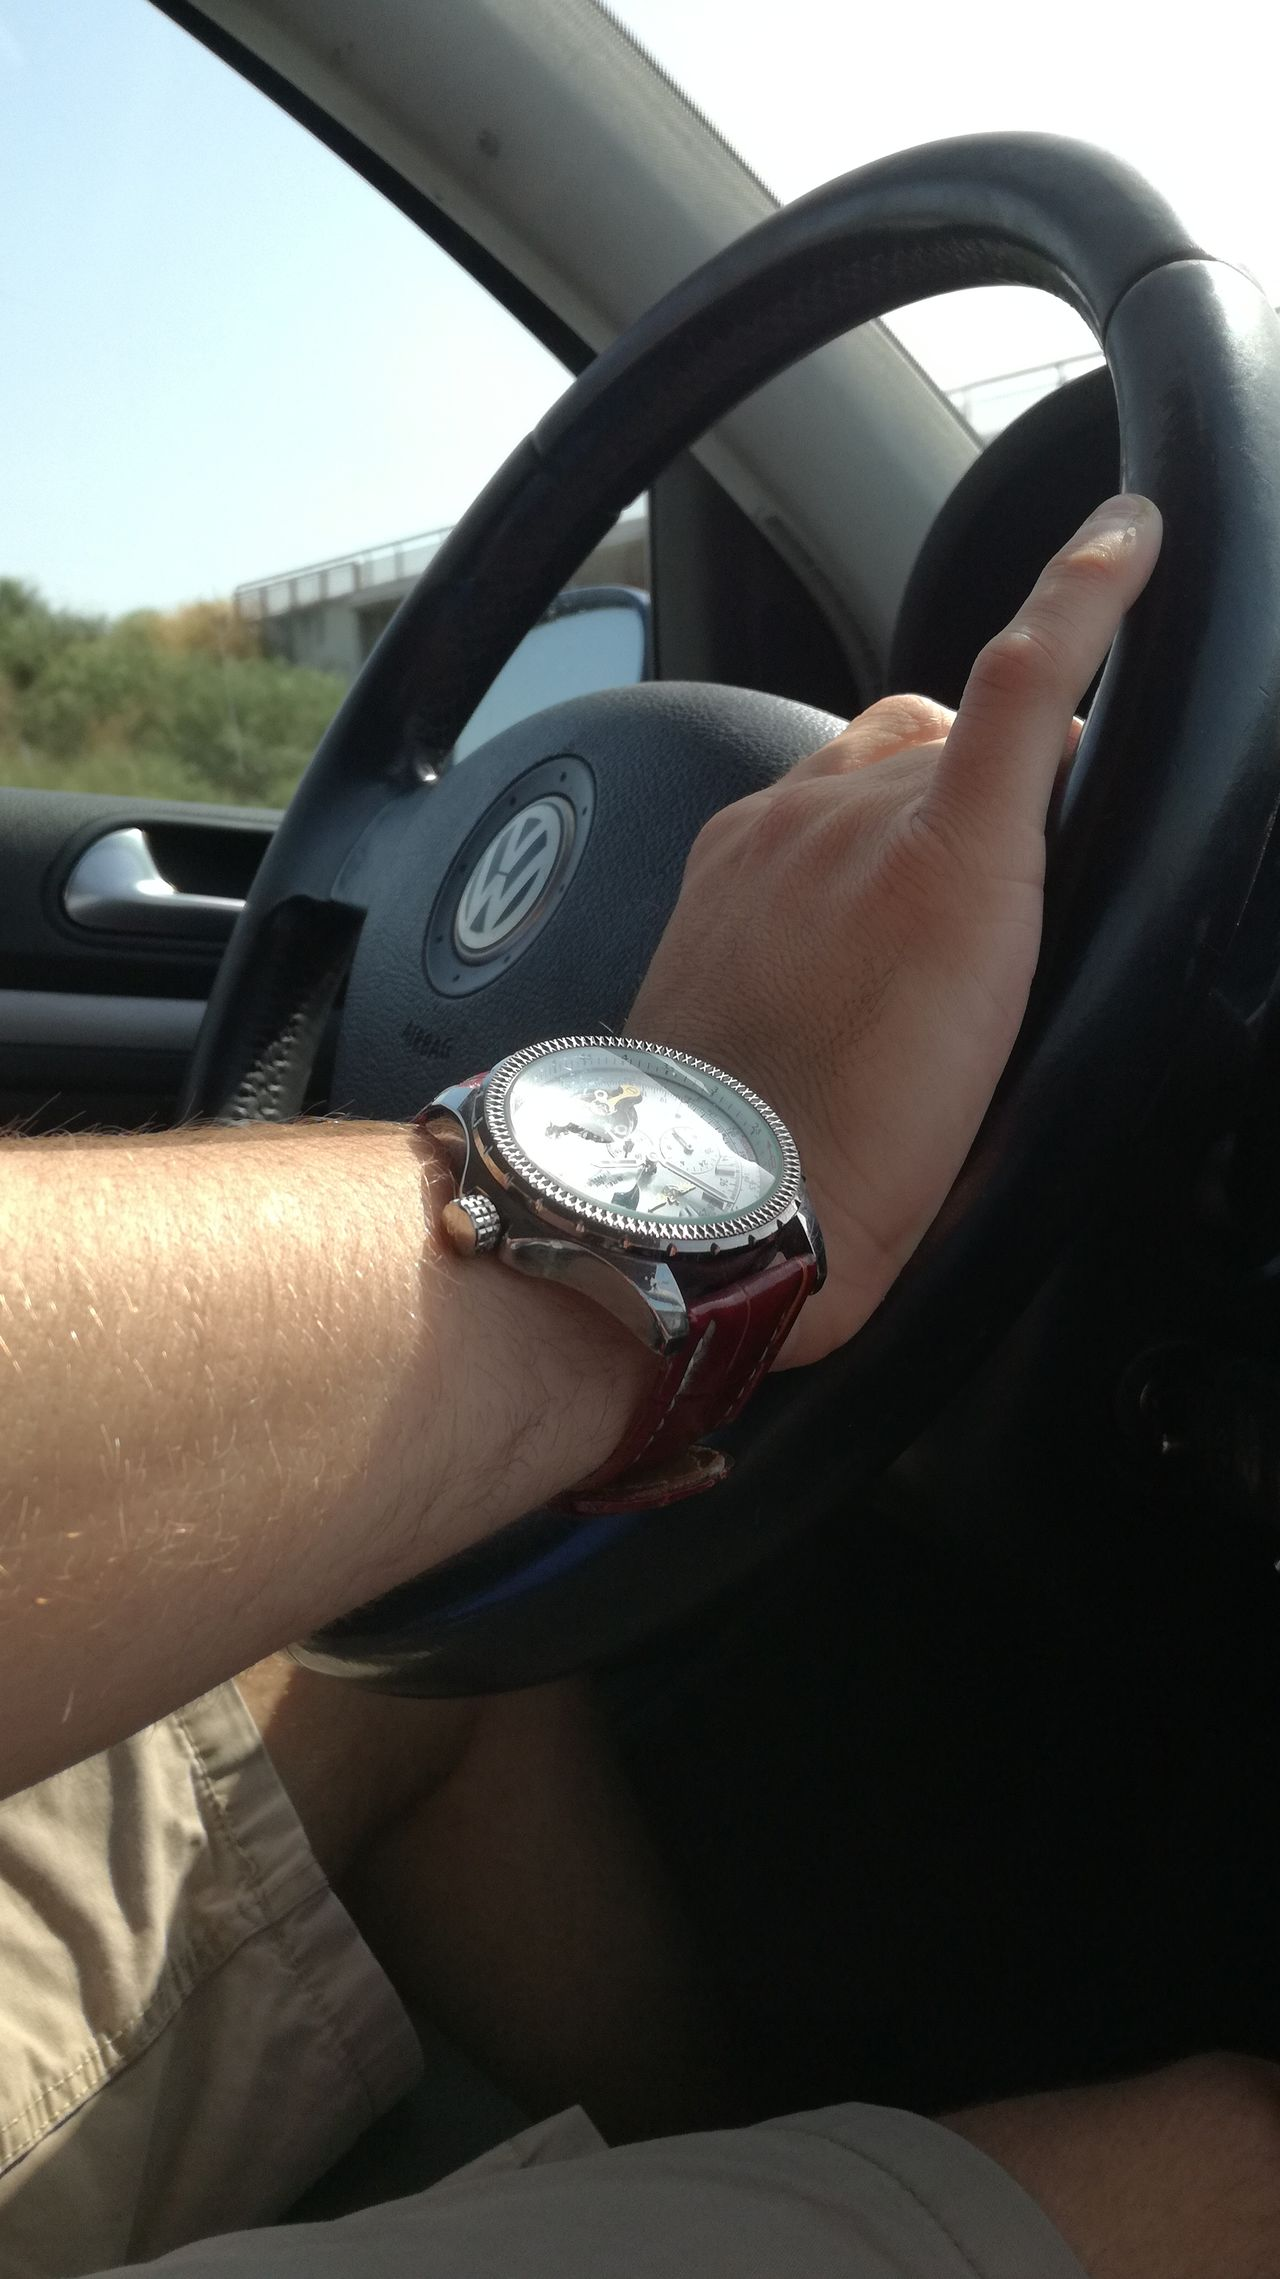 VW Driving Home Driving Shots Watch Time Fastforwarding Classy